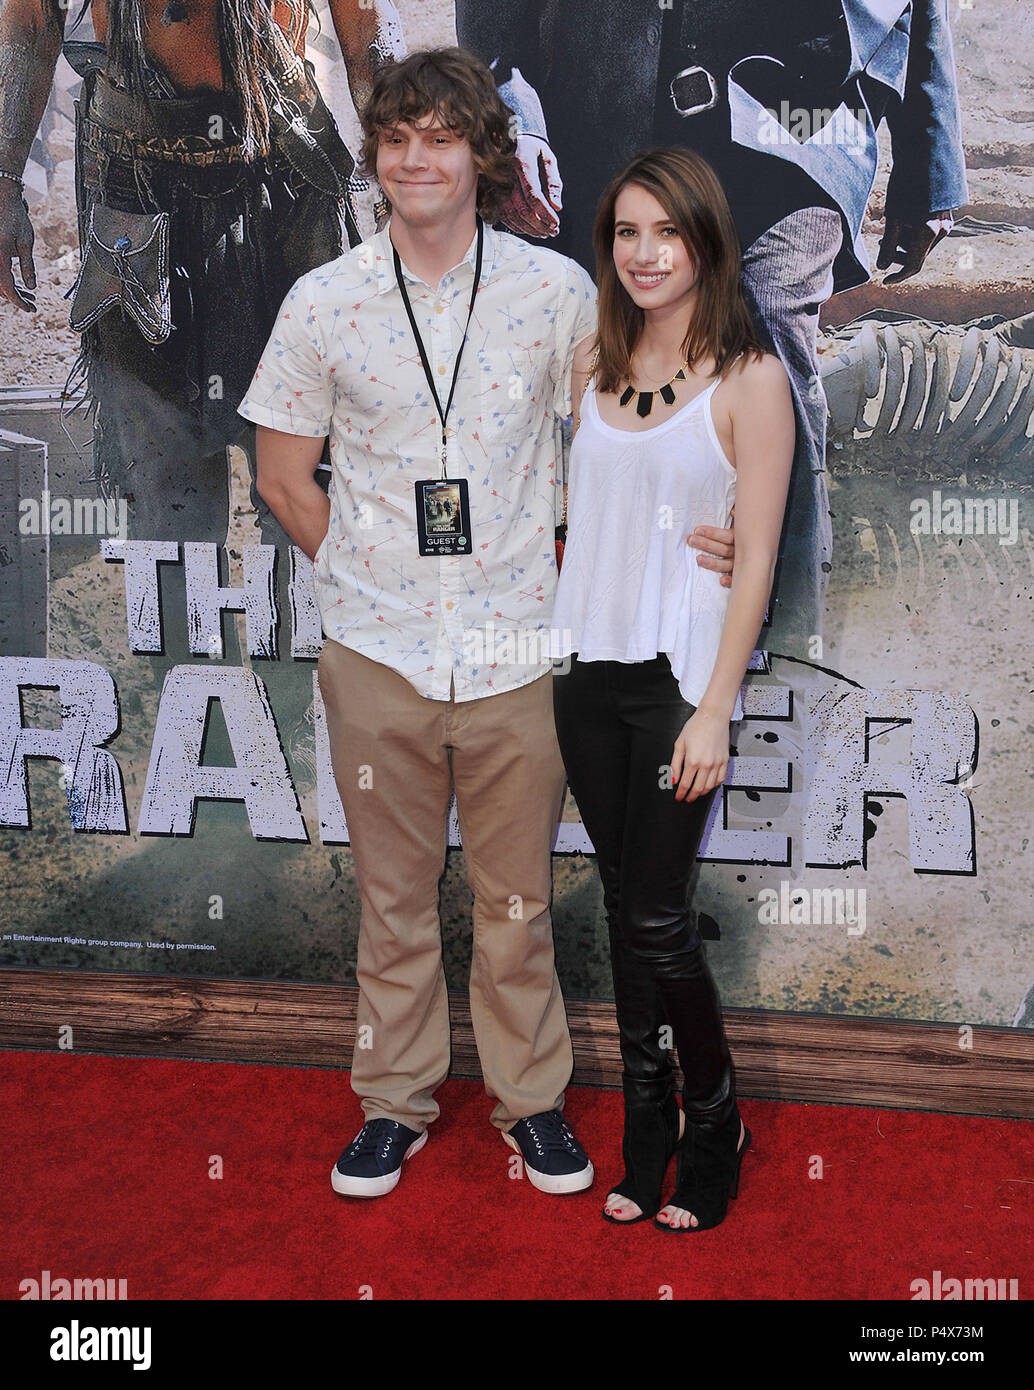 Evan Peters Emma Roberts Arriving At The Lone Ranger Premiere At The Disney California Adventure Park In Anaheim Evan Peters Emma Roberts Event In Hollywood Life California Red Carpet Event Usa Film